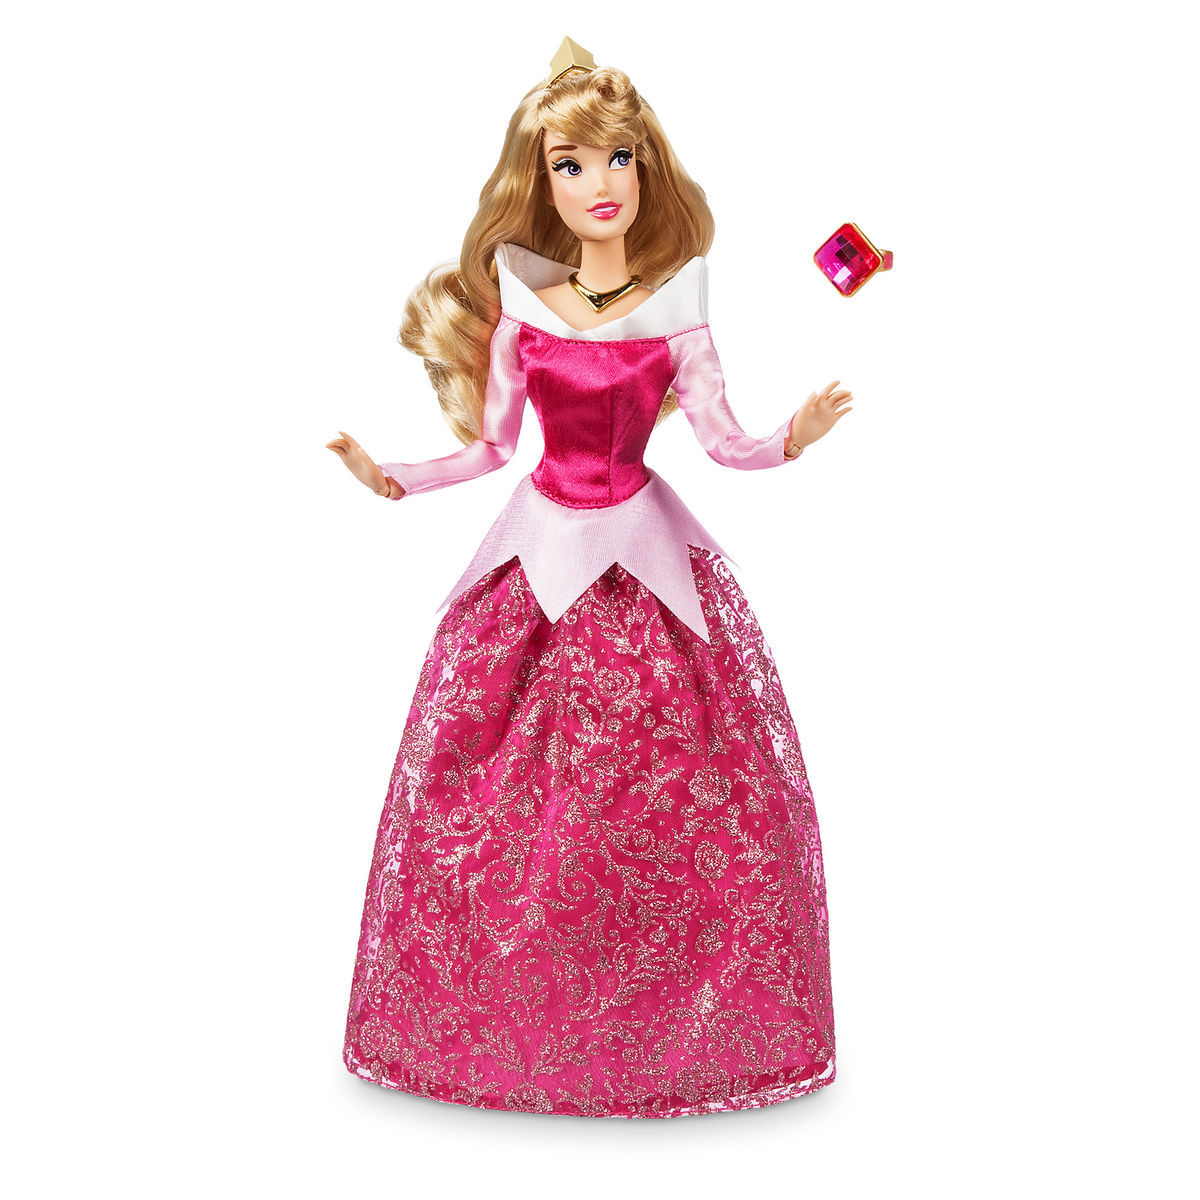 Aurora Classic Doll with Ring - Sleeping Beauty - 11 1/2\'\' | shopDisney